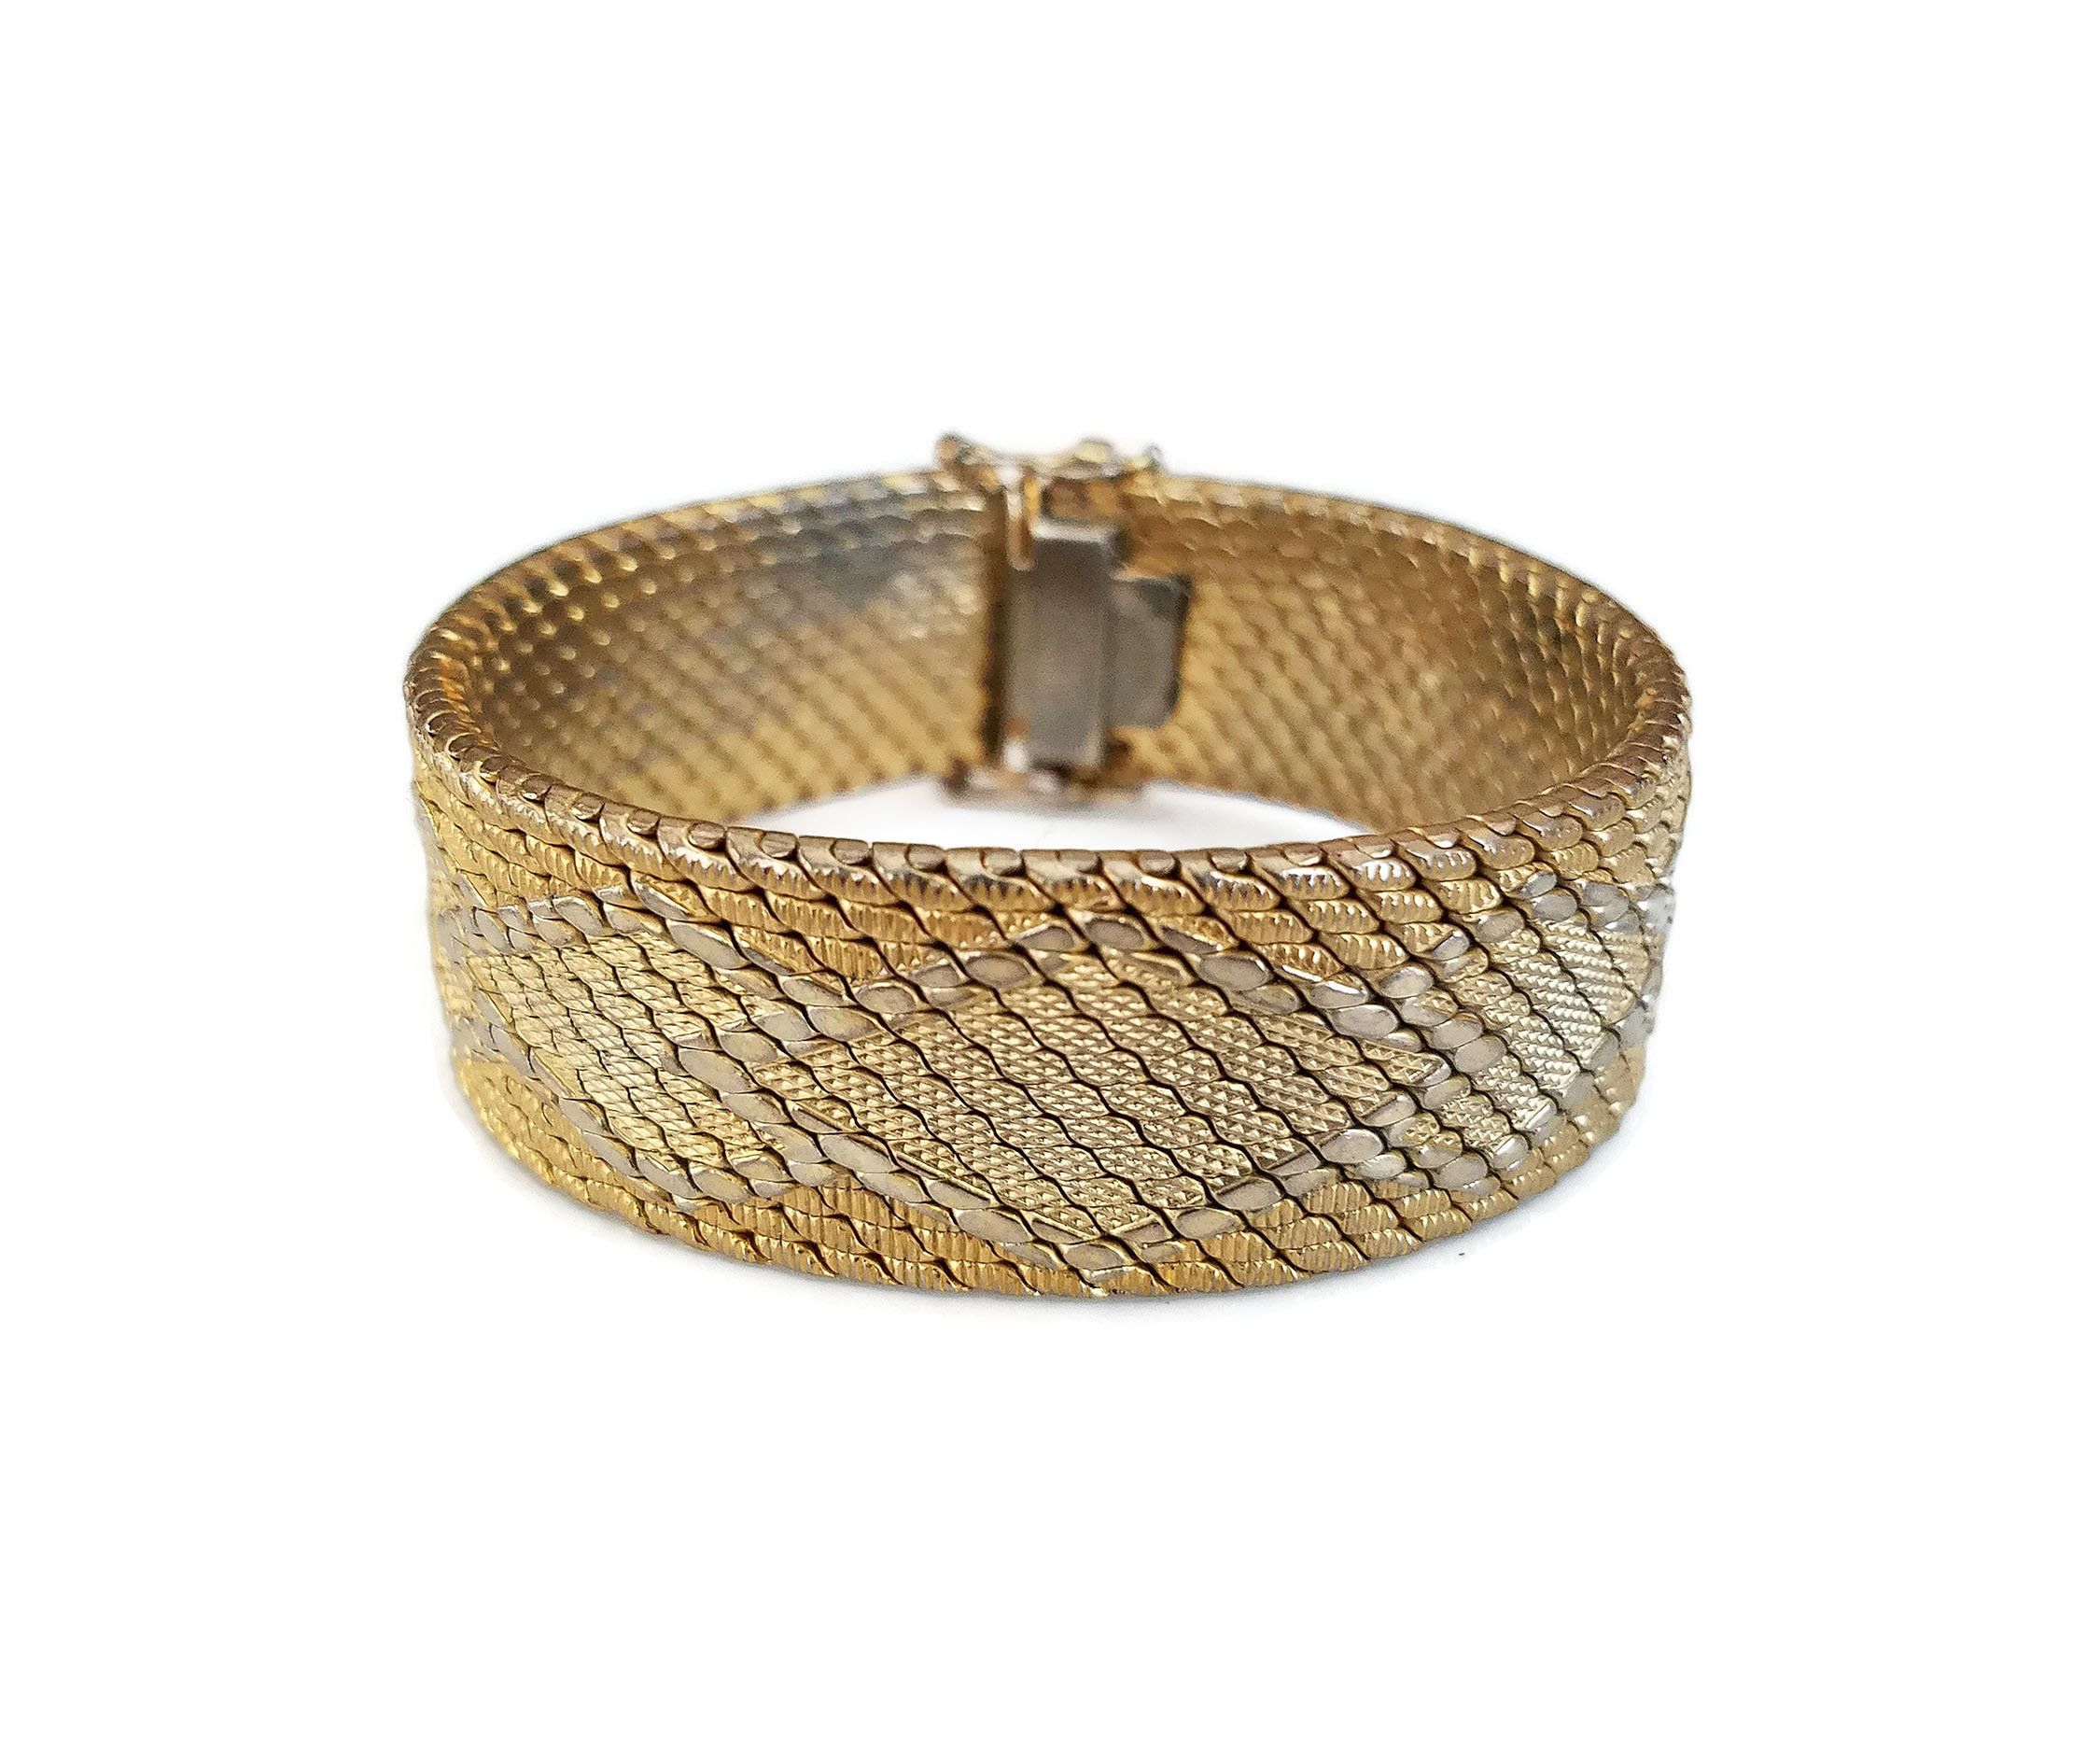 fac04ef2629eb 18k Gold Plated DeCesare Wide Mesh Bracelet - Made in Italy, Diamond ...